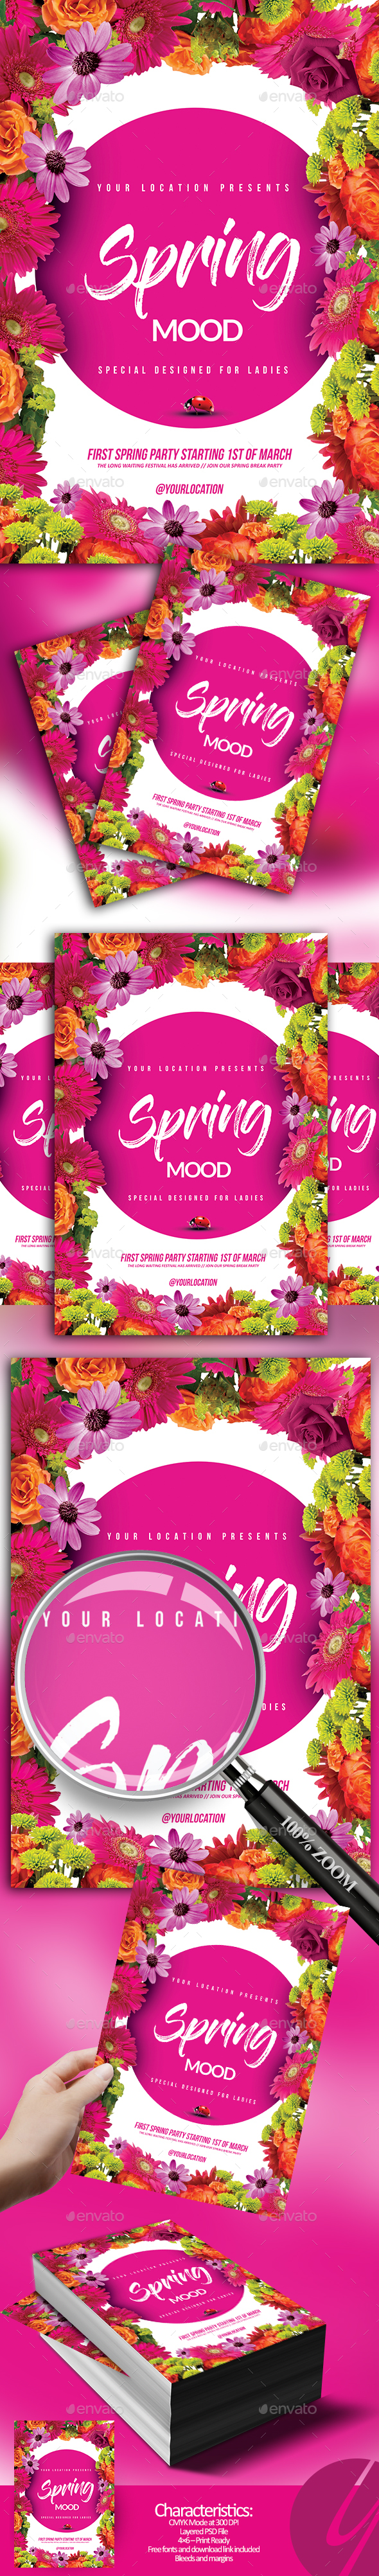 Spring Mood Flyer - Holidays Events